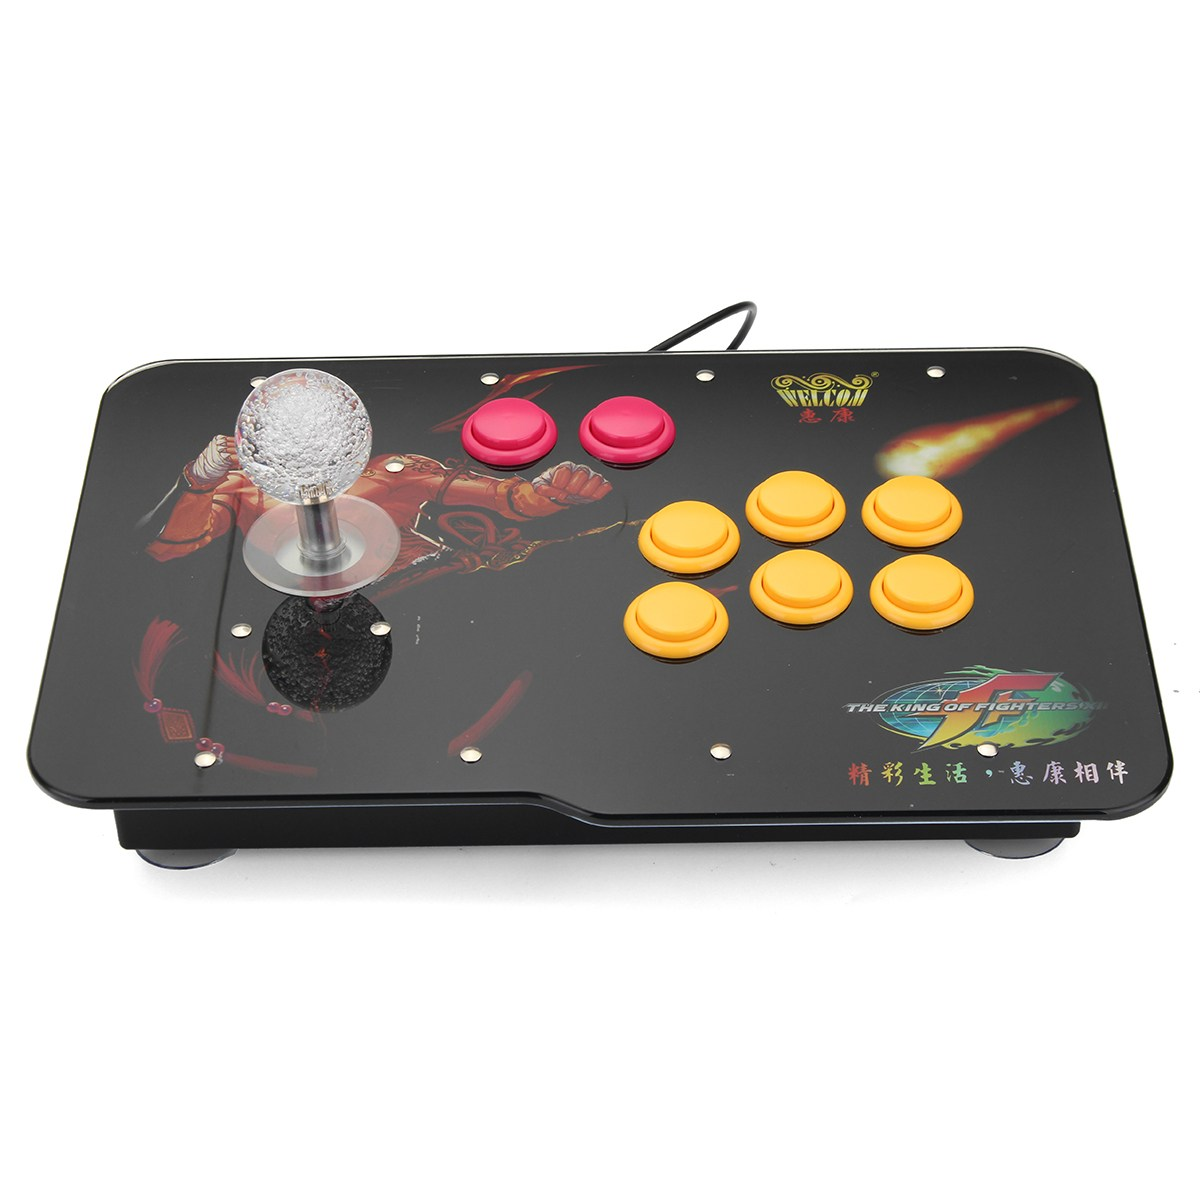 все цены на Arcade Stick Video Game With LED Light USB Joystick Controller Rocker For PC Phone Game Controller Play Street Fighting онлайн